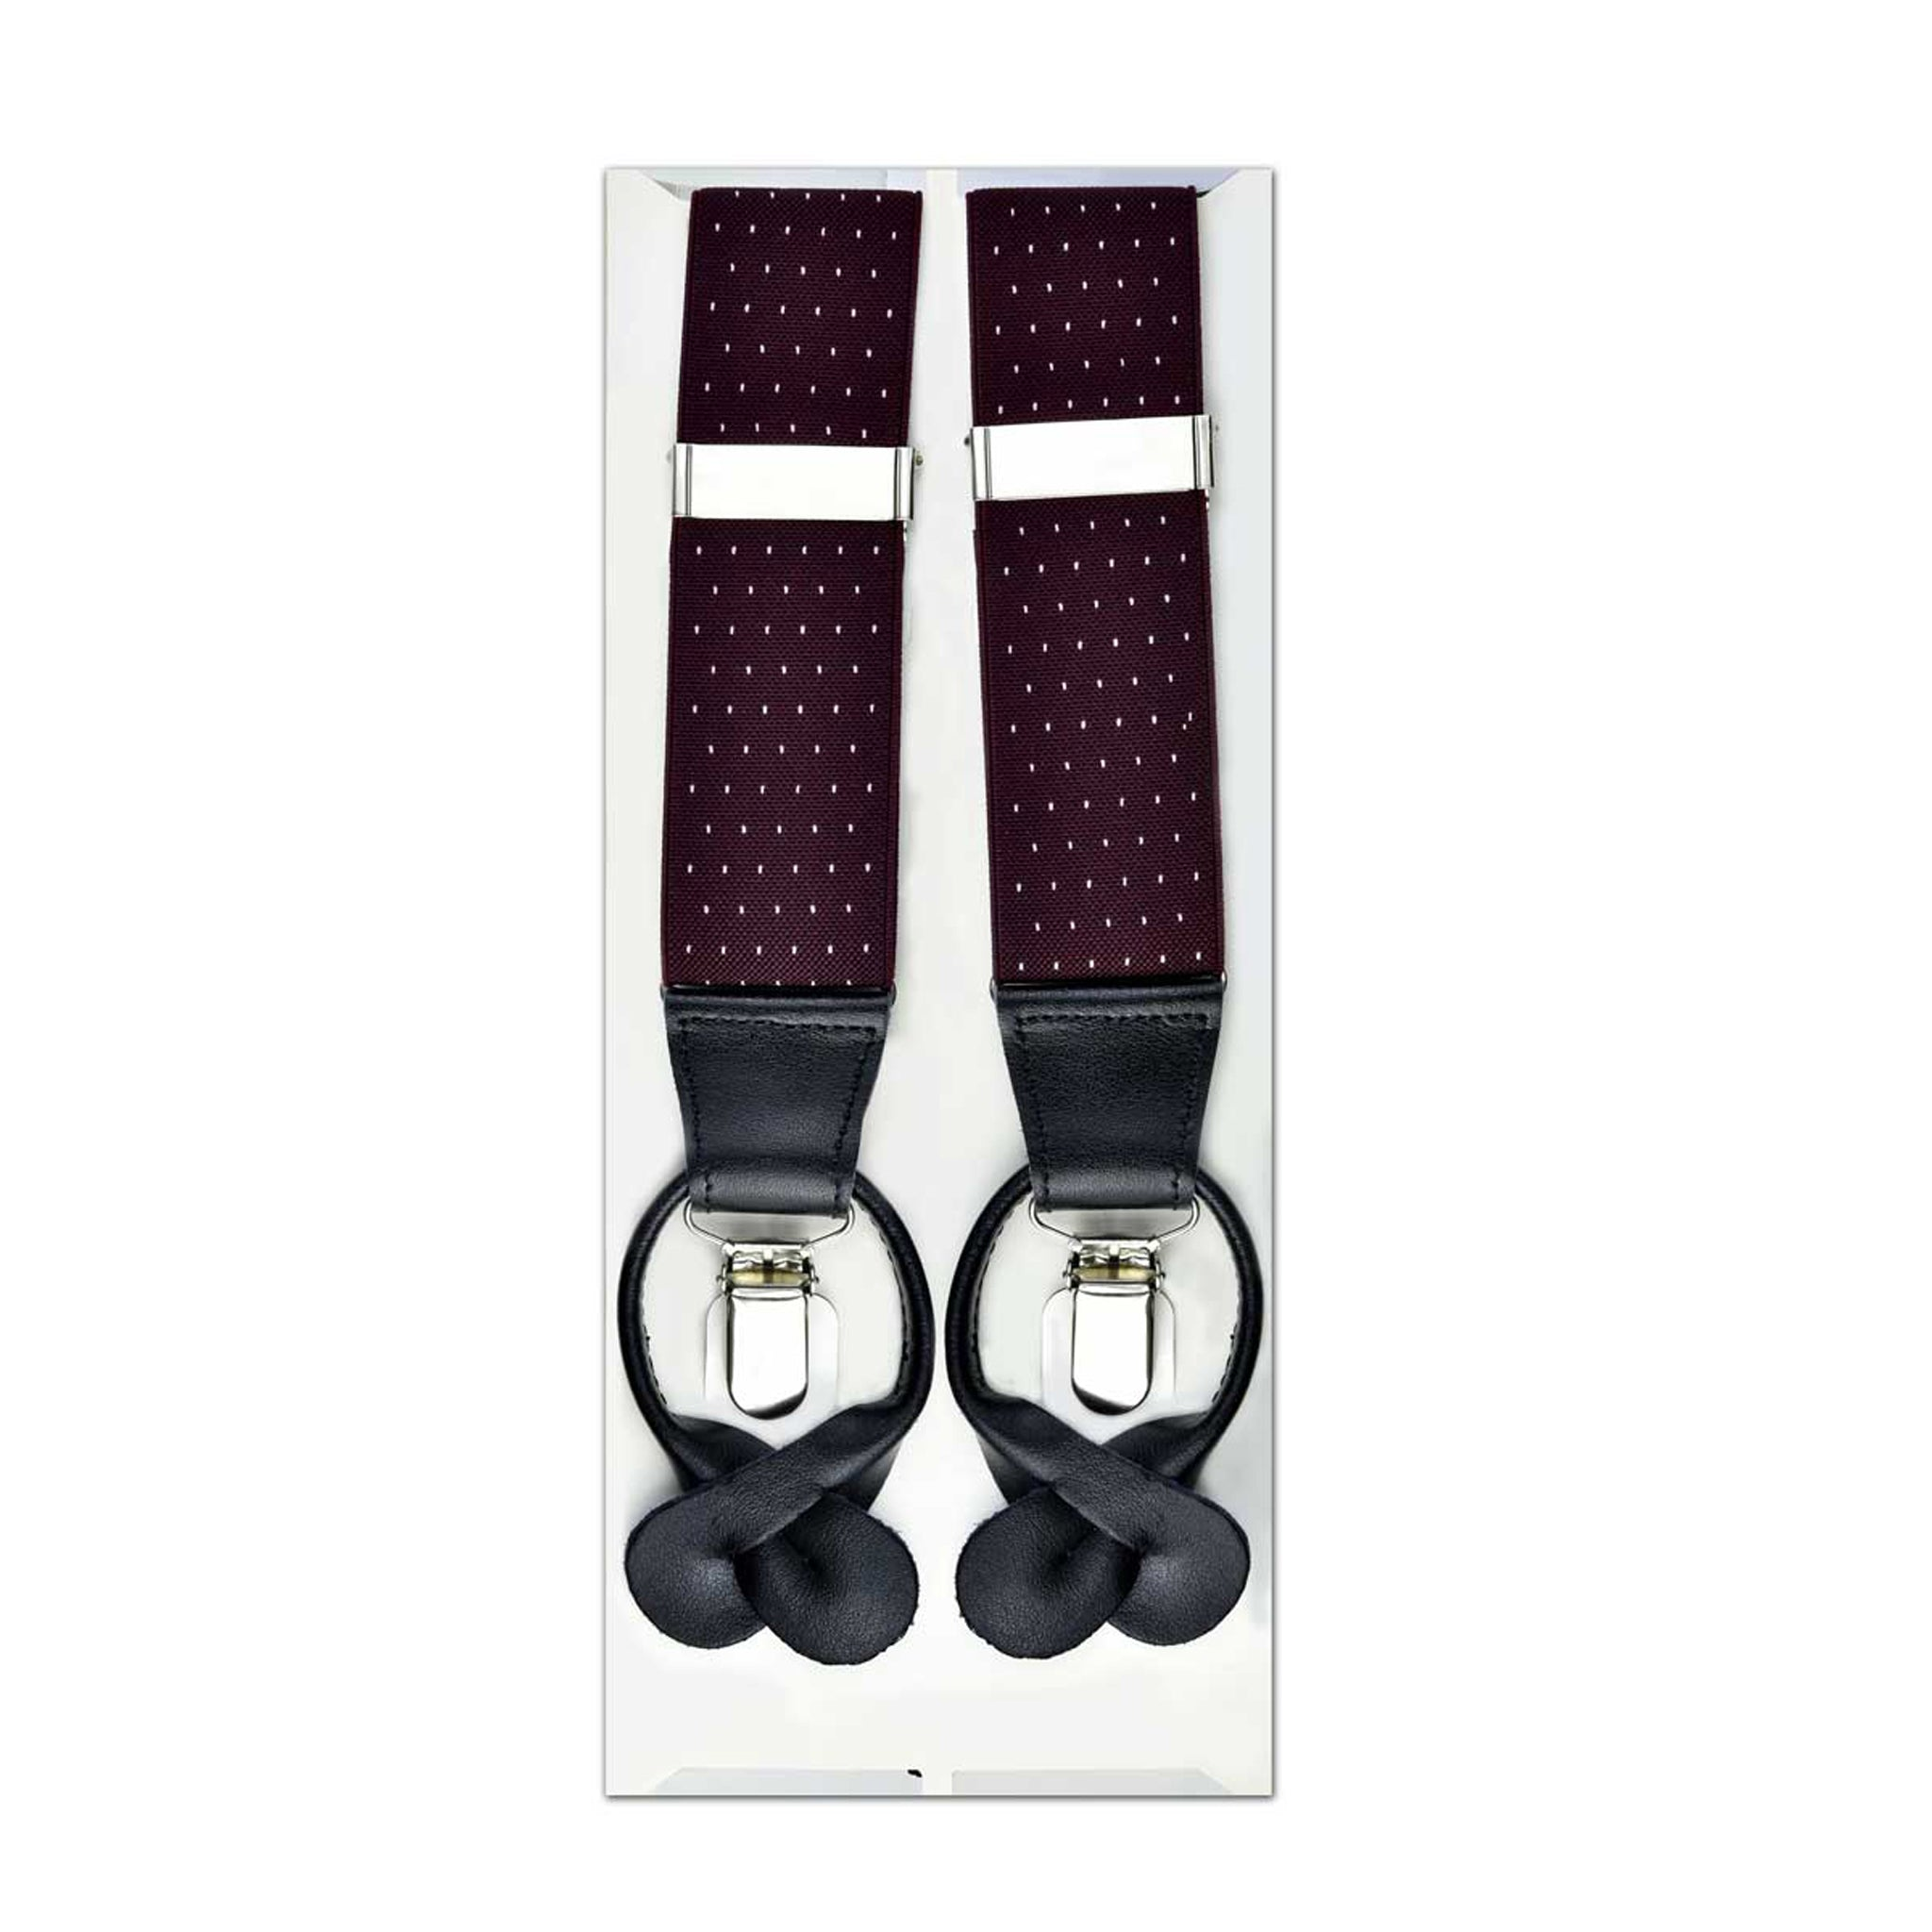 MISSOURI Levi Suspenders in Maroon & White - Giorgio Mandelli® Official Site | GIORGIO MANDELLI Made in Italy